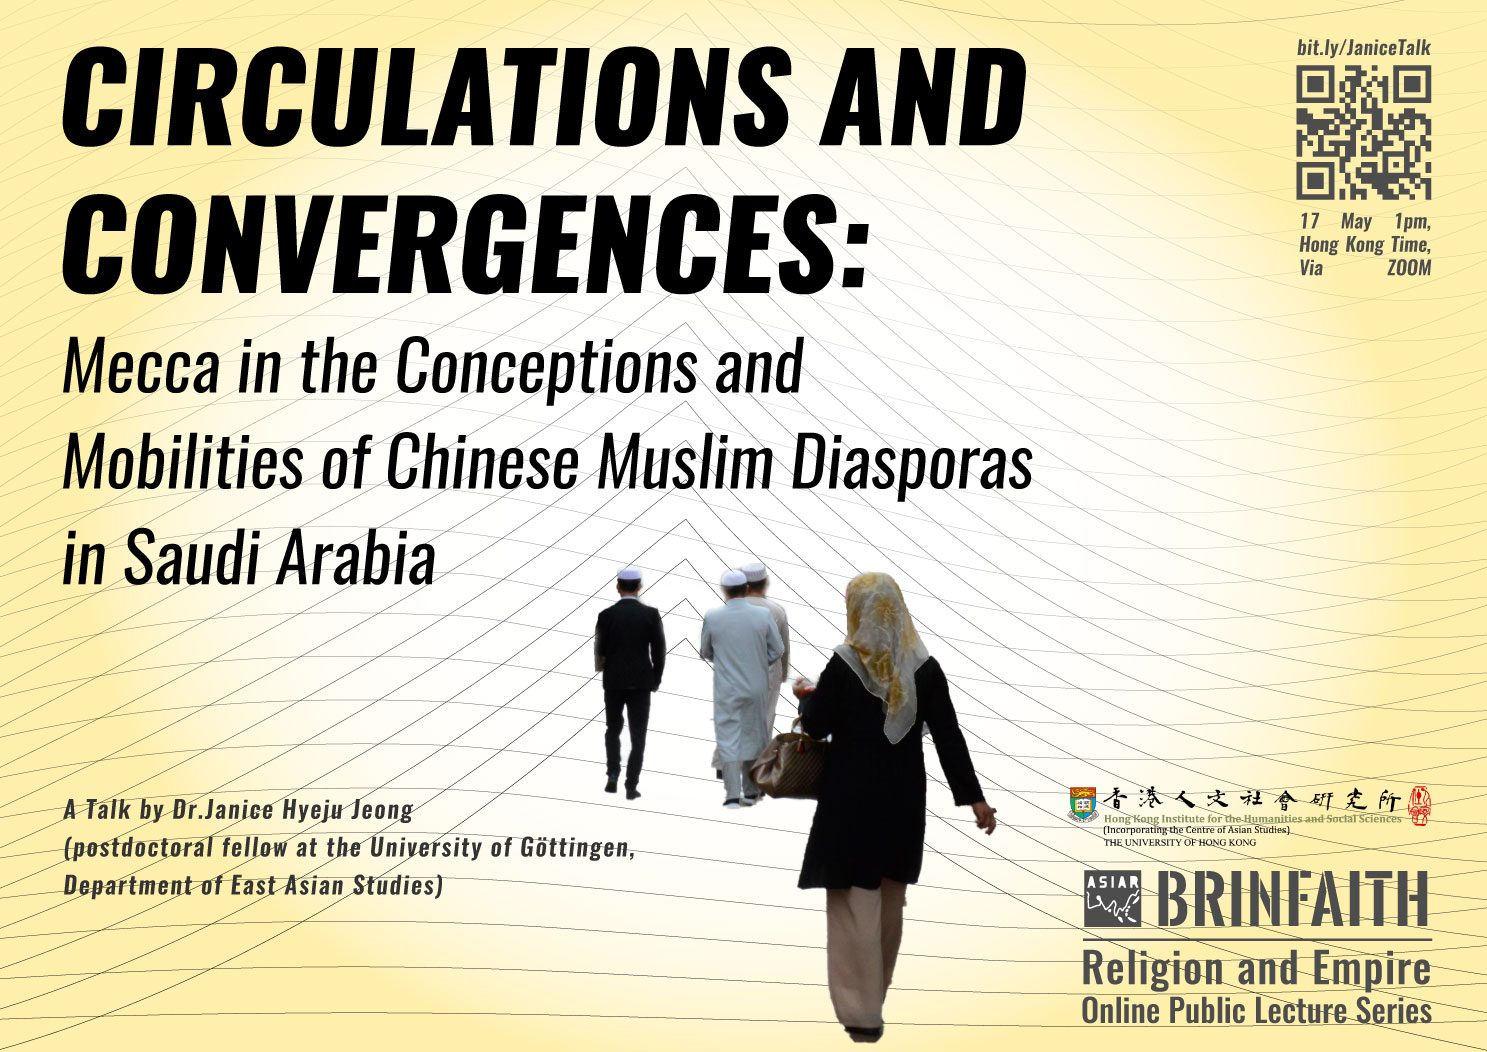 """BRINFAITH Religion and Empire Lecture Series on """"Circulations and Convergences: Mecca in the Conceptions and Mobilities of Chinese Muslim Diasporas in Saudi Arabia"""" by Dr. Janice Hyeju Jeong (May 17, 2021)"""